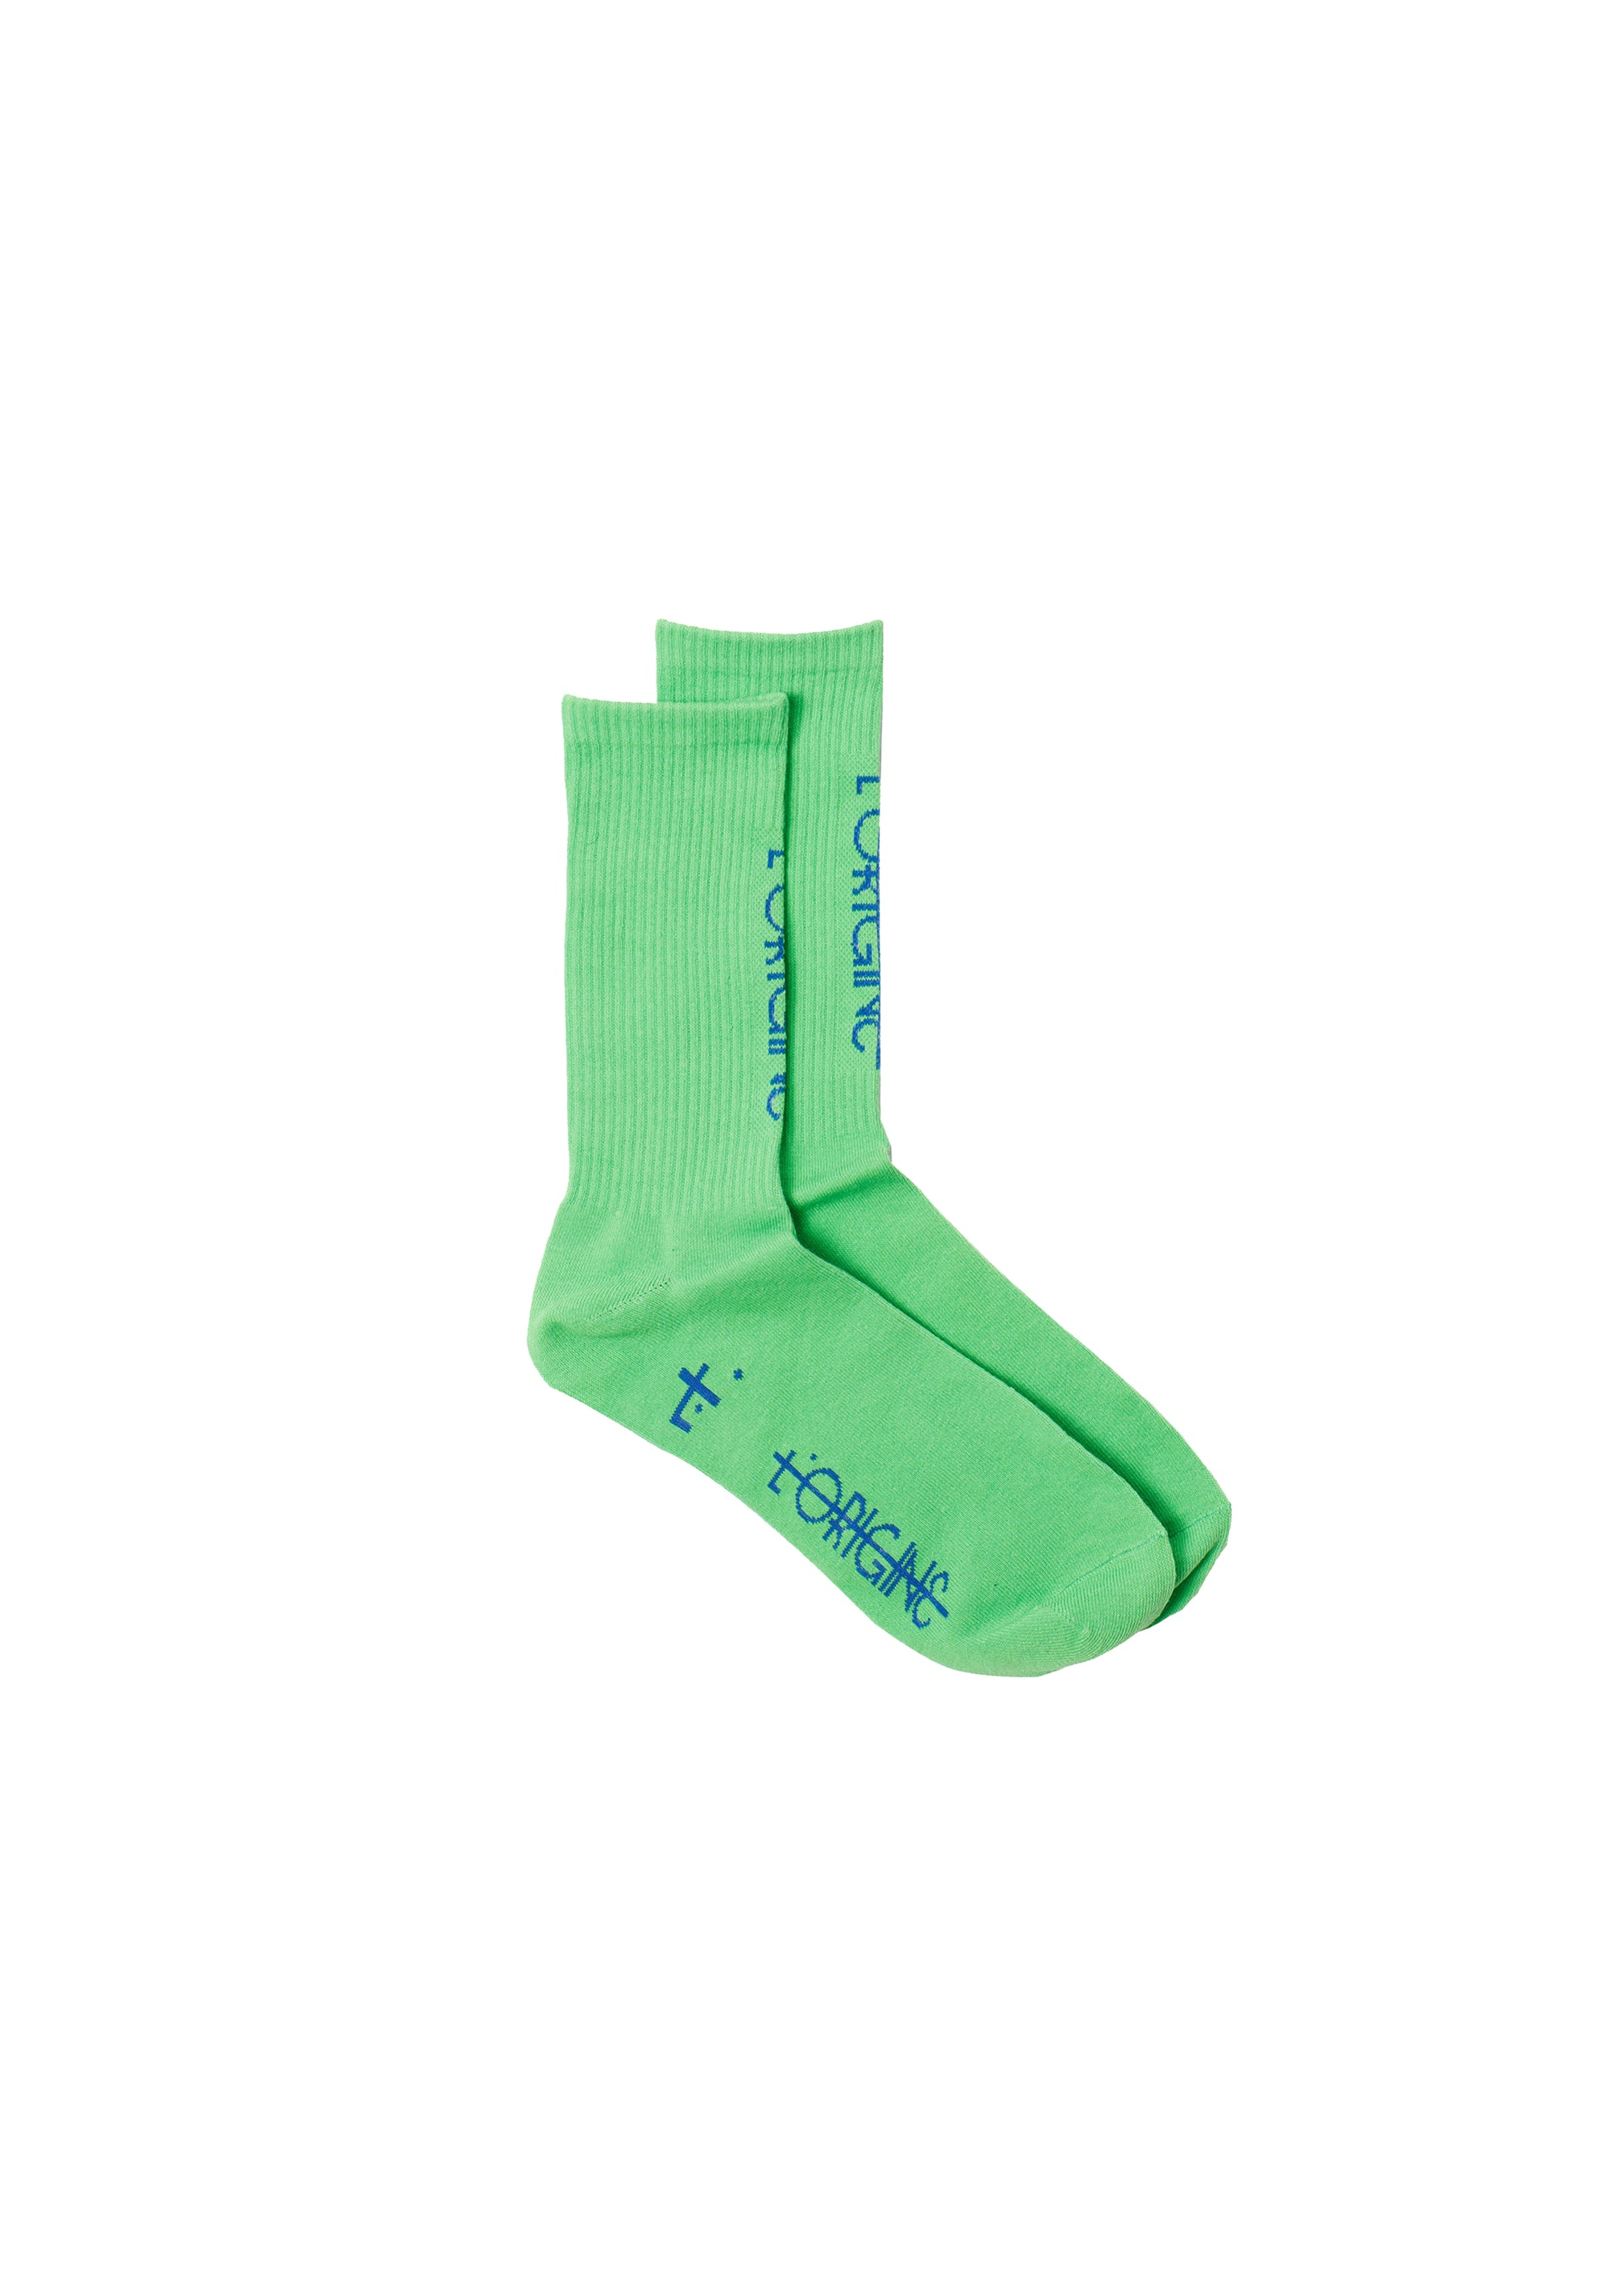 Socks L'origine Vertical Green